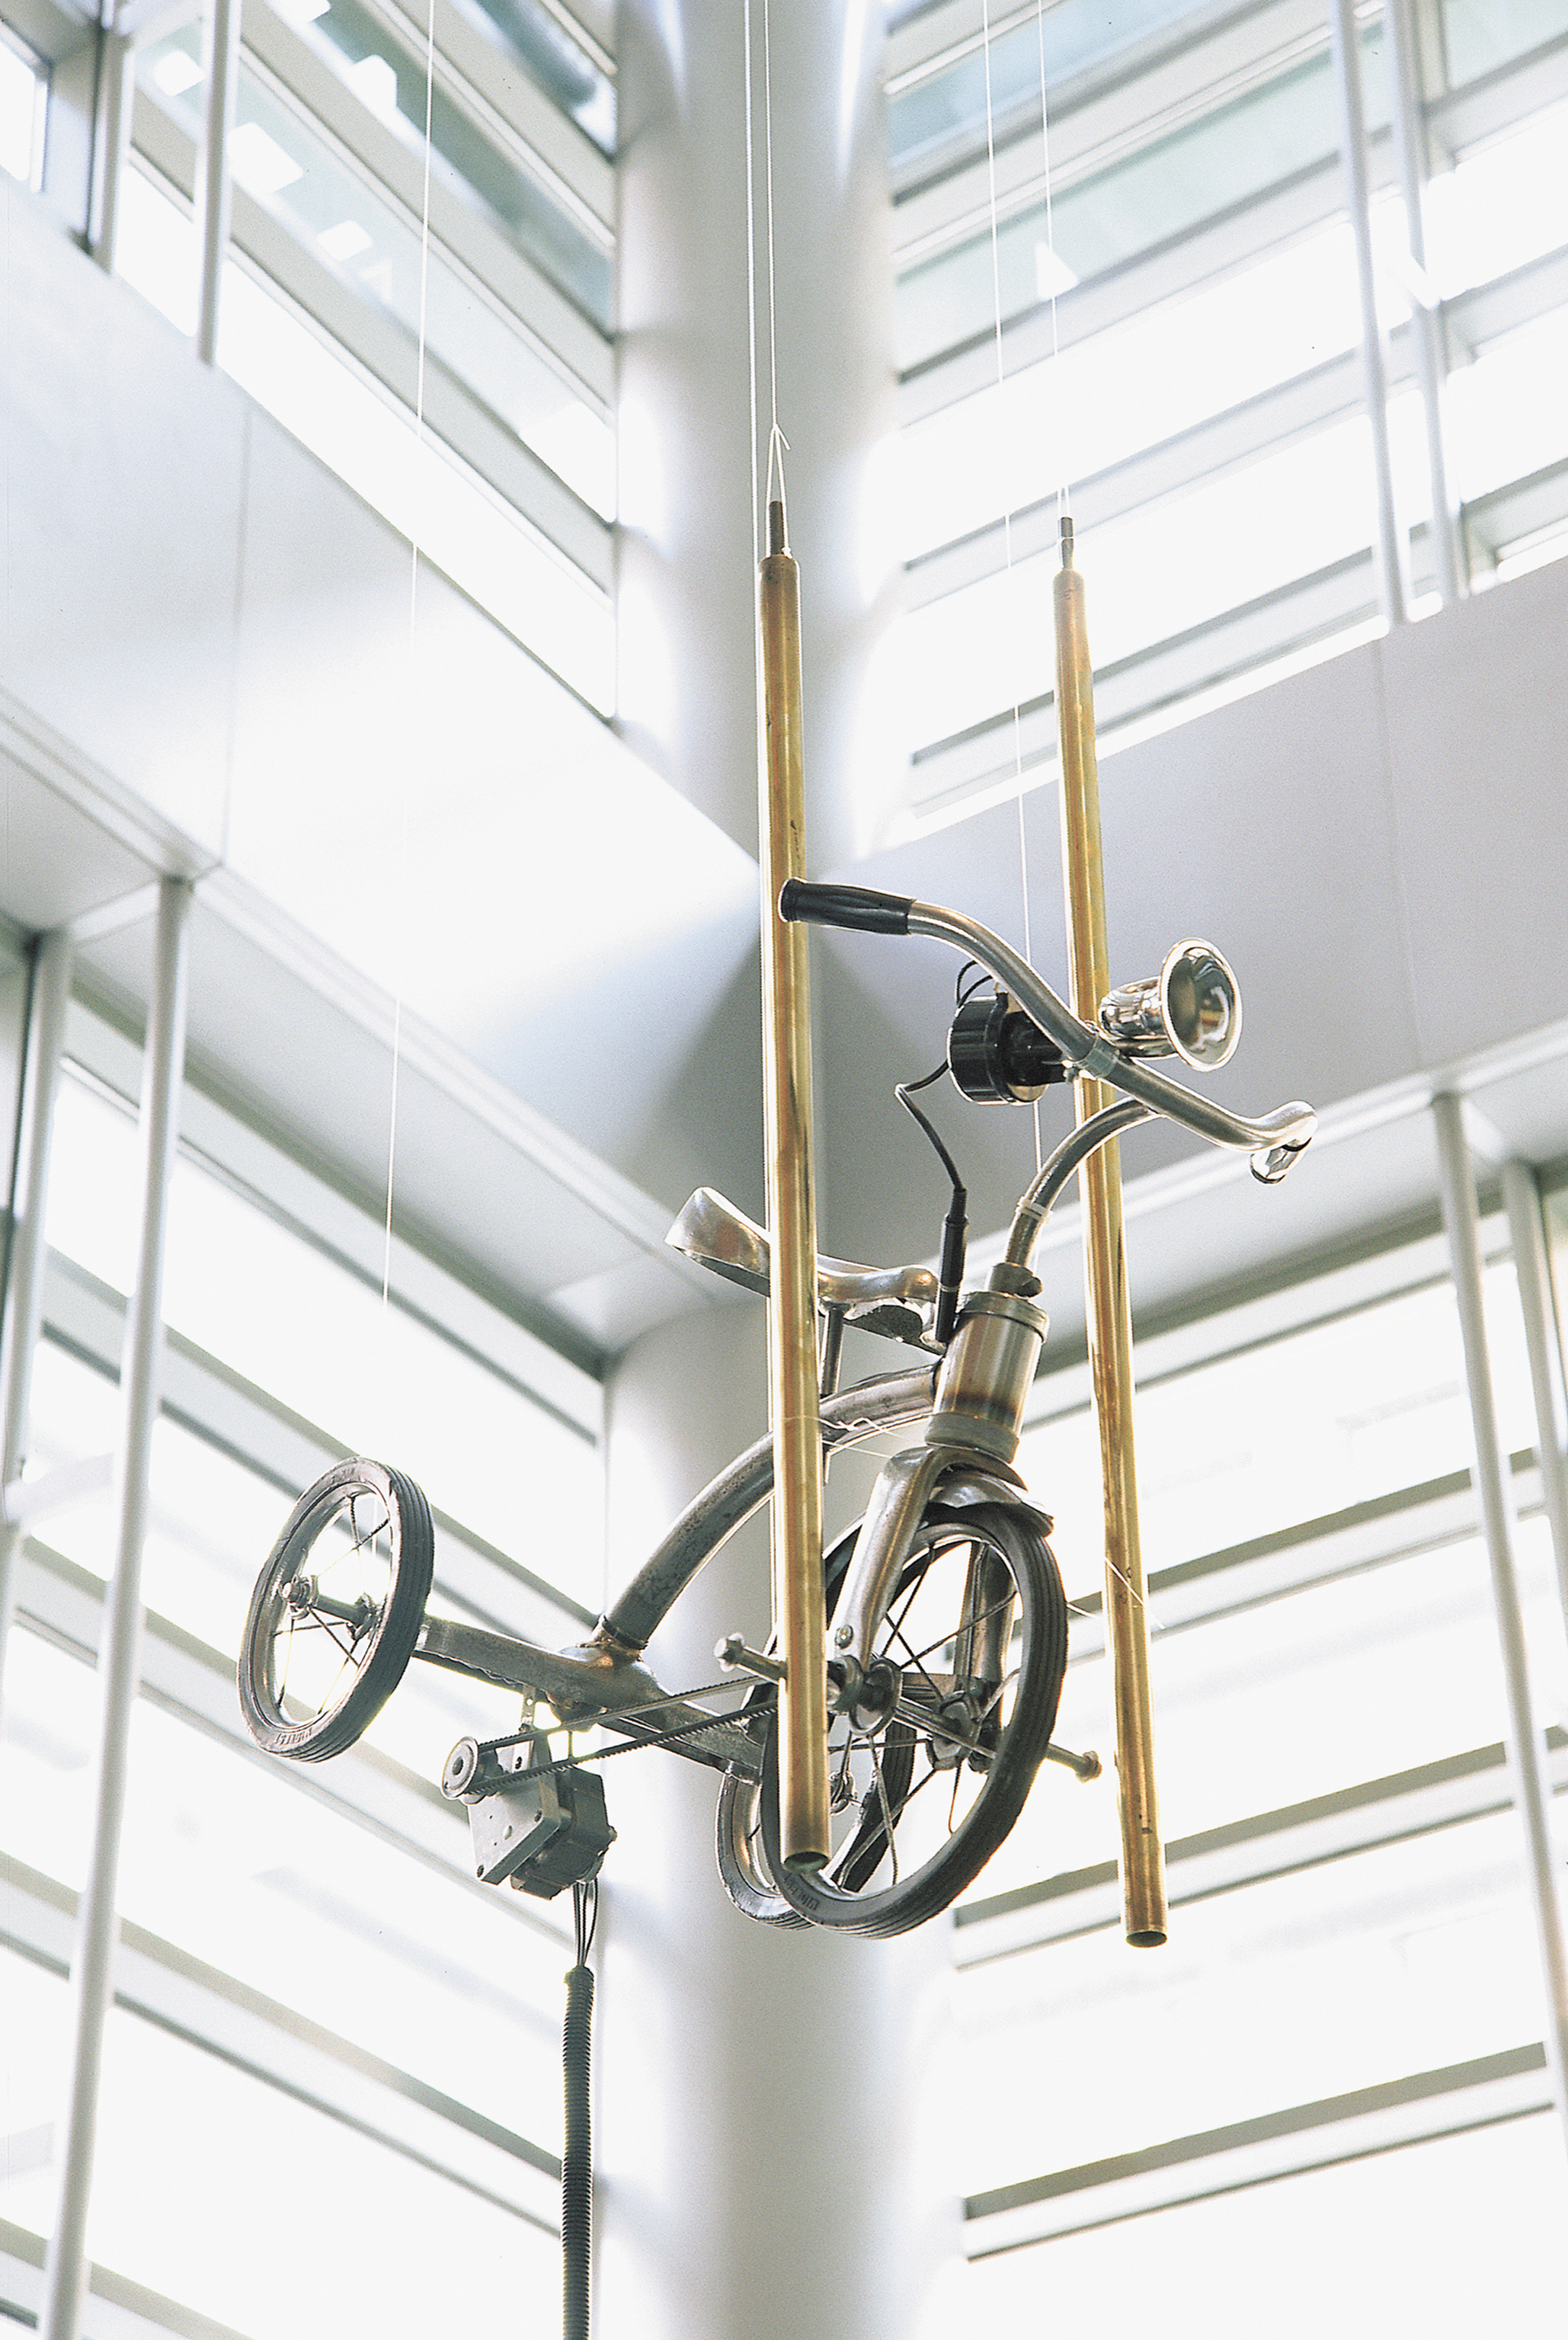 NuToneTricycle   tricycle, motor, doorbell gongs, electronics, bicycle bulb as button  2002